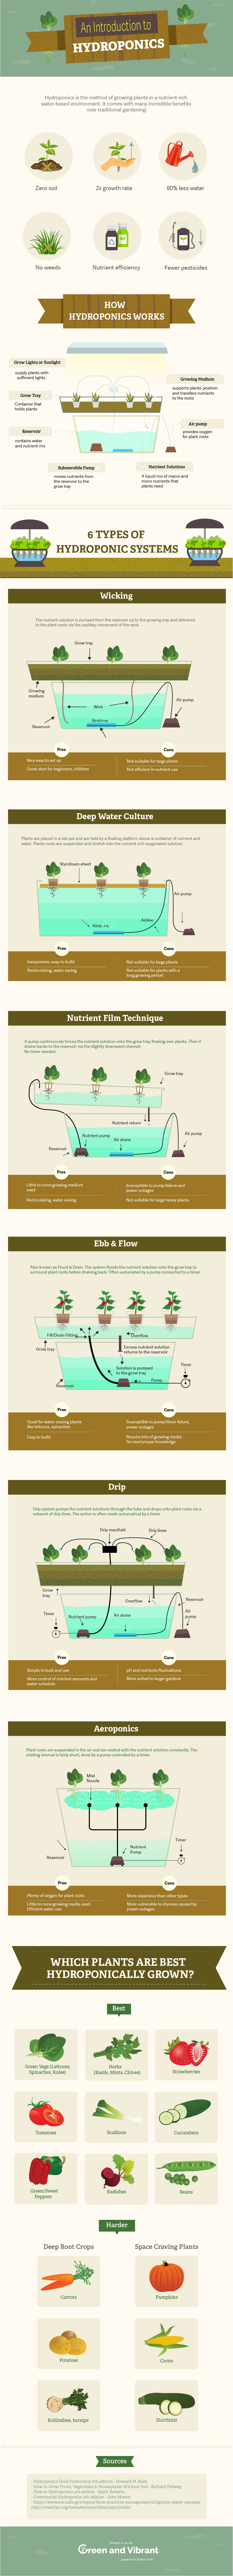 An Introduction to Hydroponics infographic